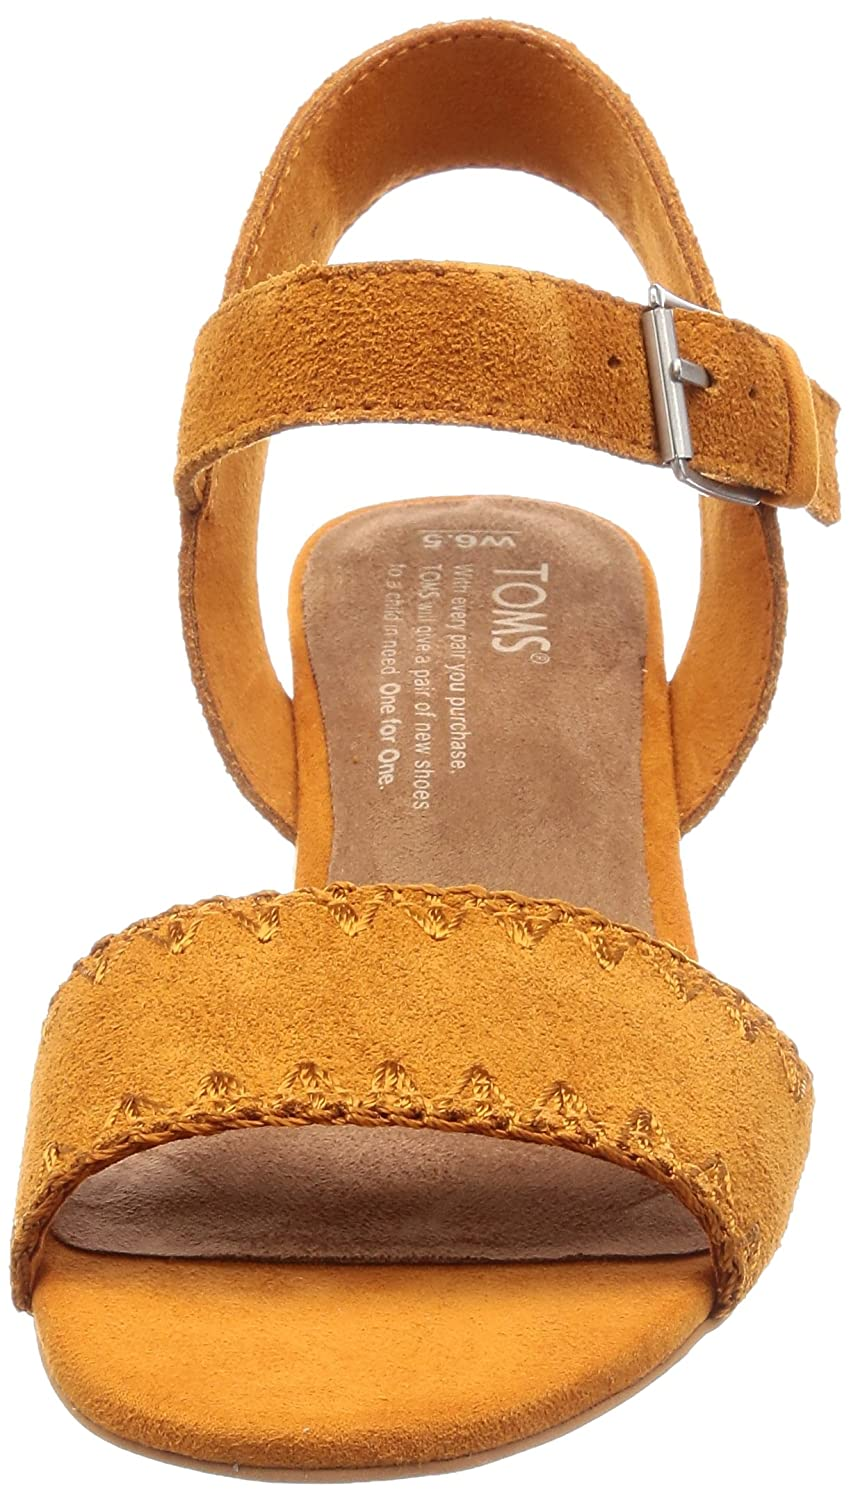 c129e93bf56b ... Sandalia Rosa TOMS mujer TOMS mujer Saffron Suede Suede 5e35ba5 -  zuluhotel.online buy best ...